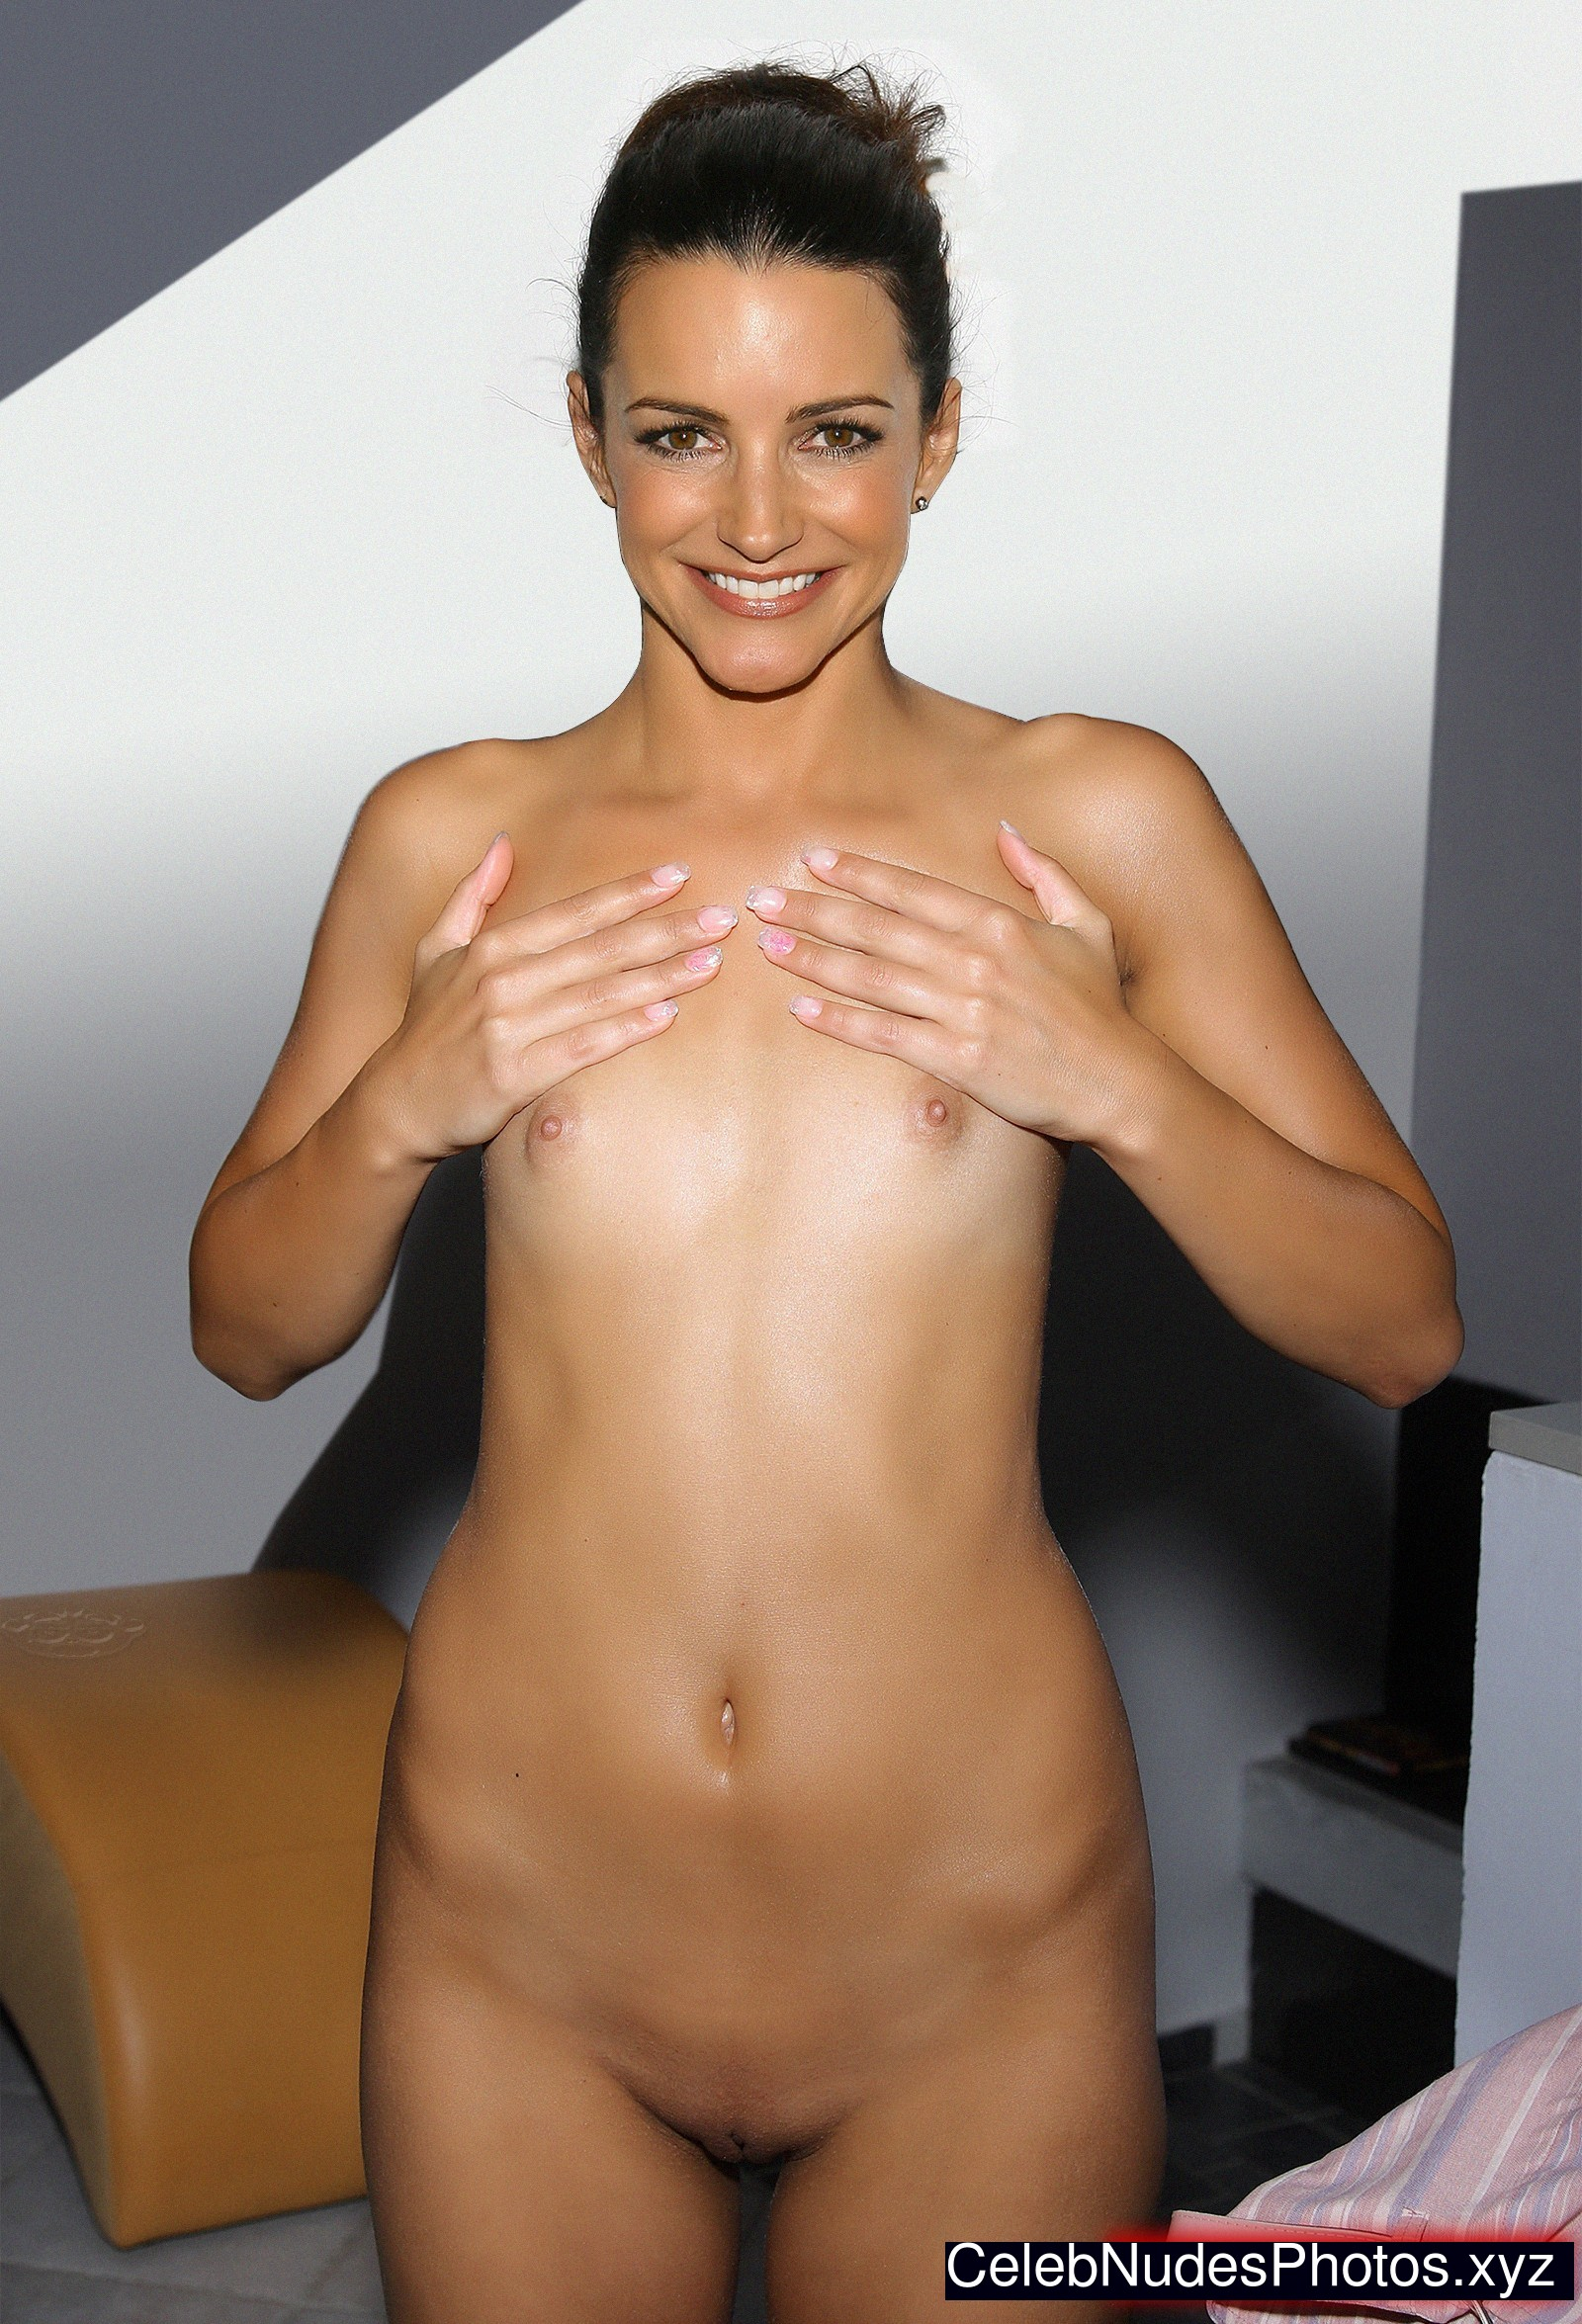 Celebrity nude pics for free #1